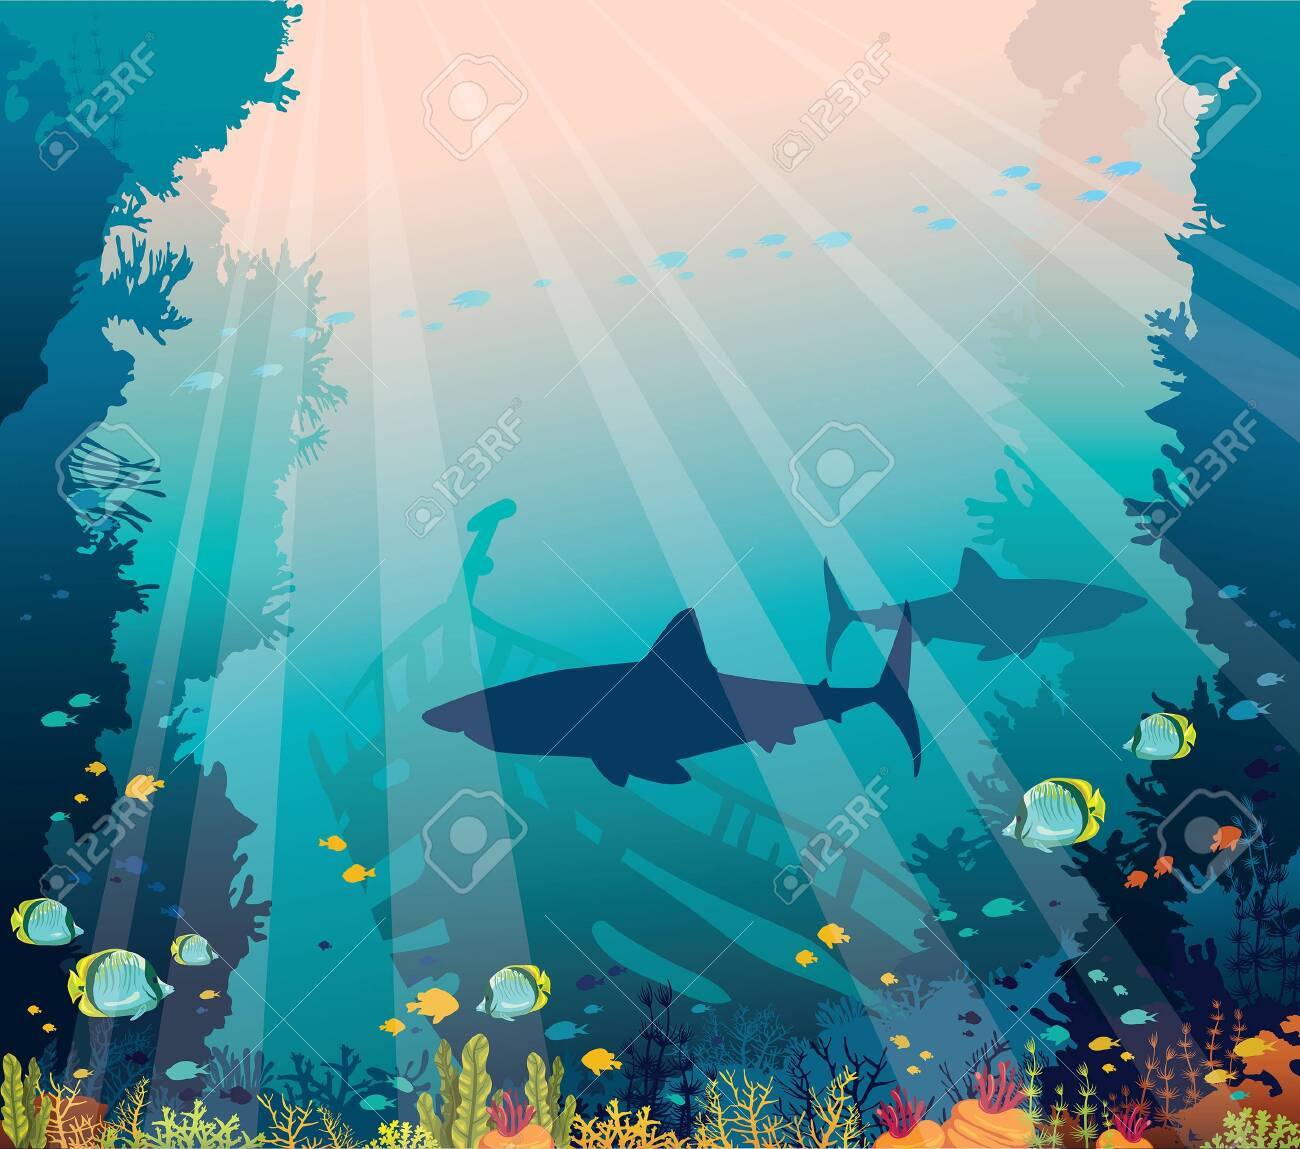 Underwater nature and marine wildlife. Silhouette of sharks, sunken ship, school of tropical fishes and coral reef on a blue sea background. - 122473674